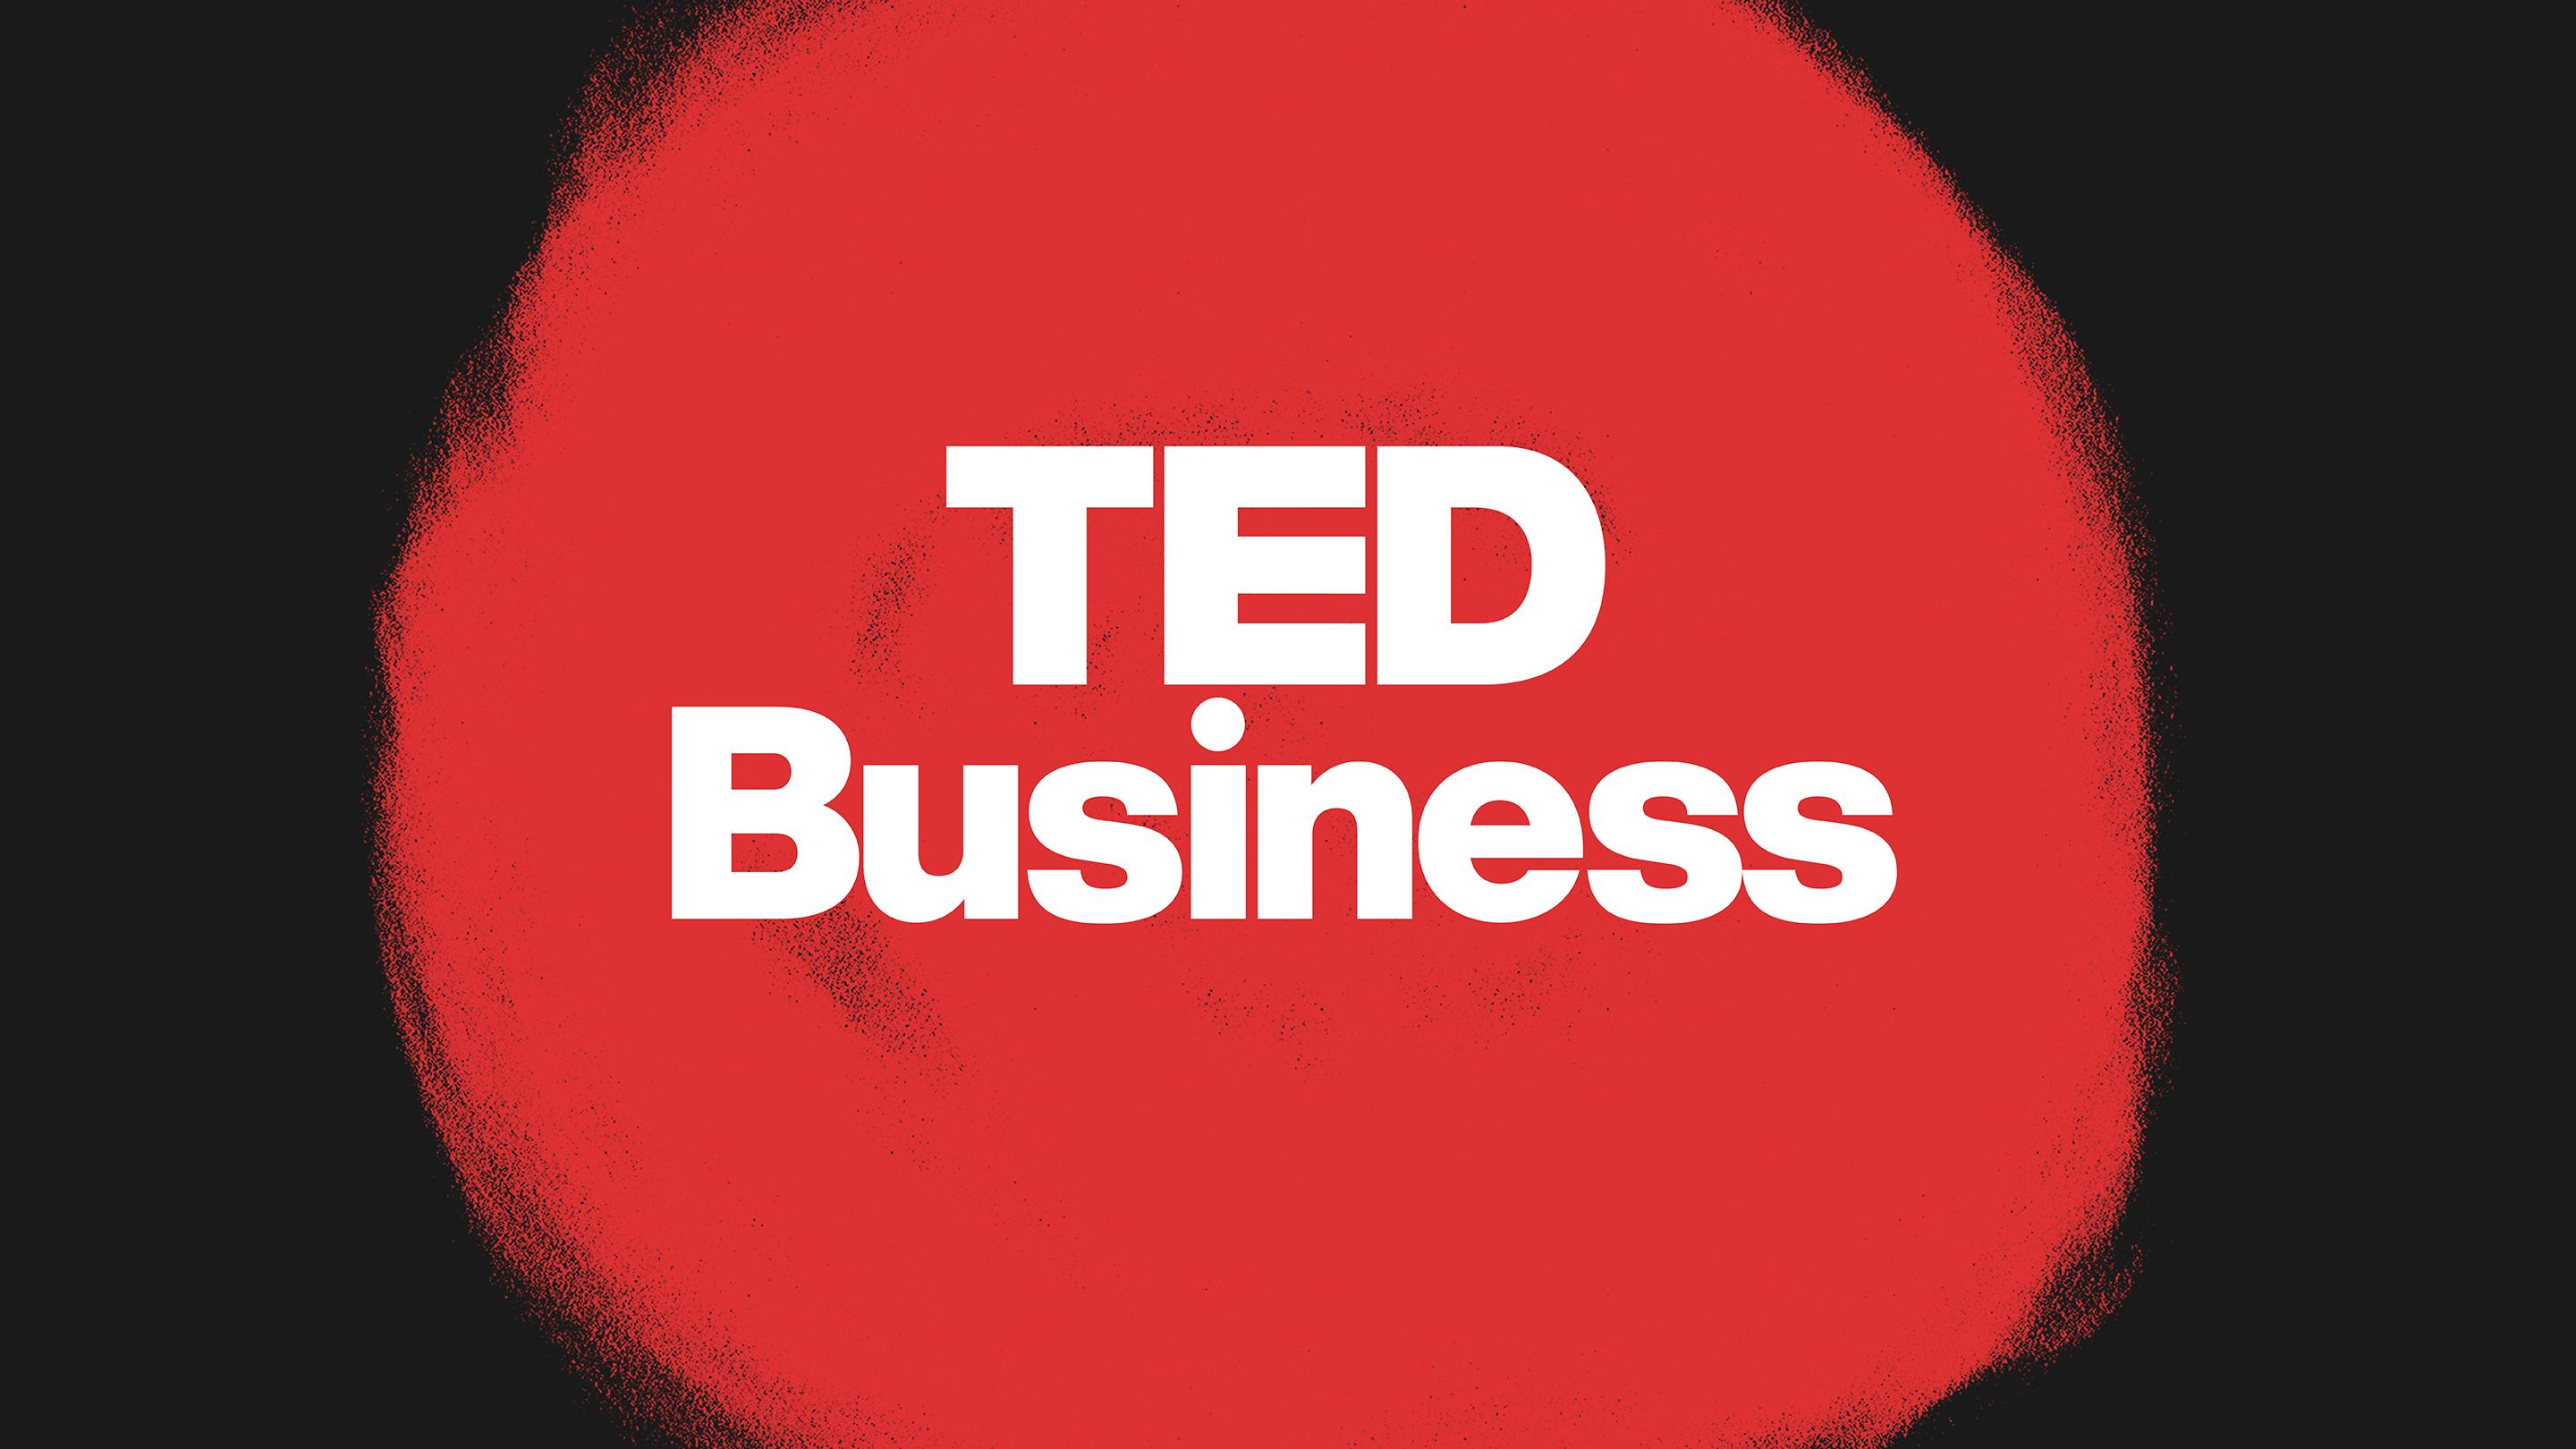 Should we cry at work? | TED Business